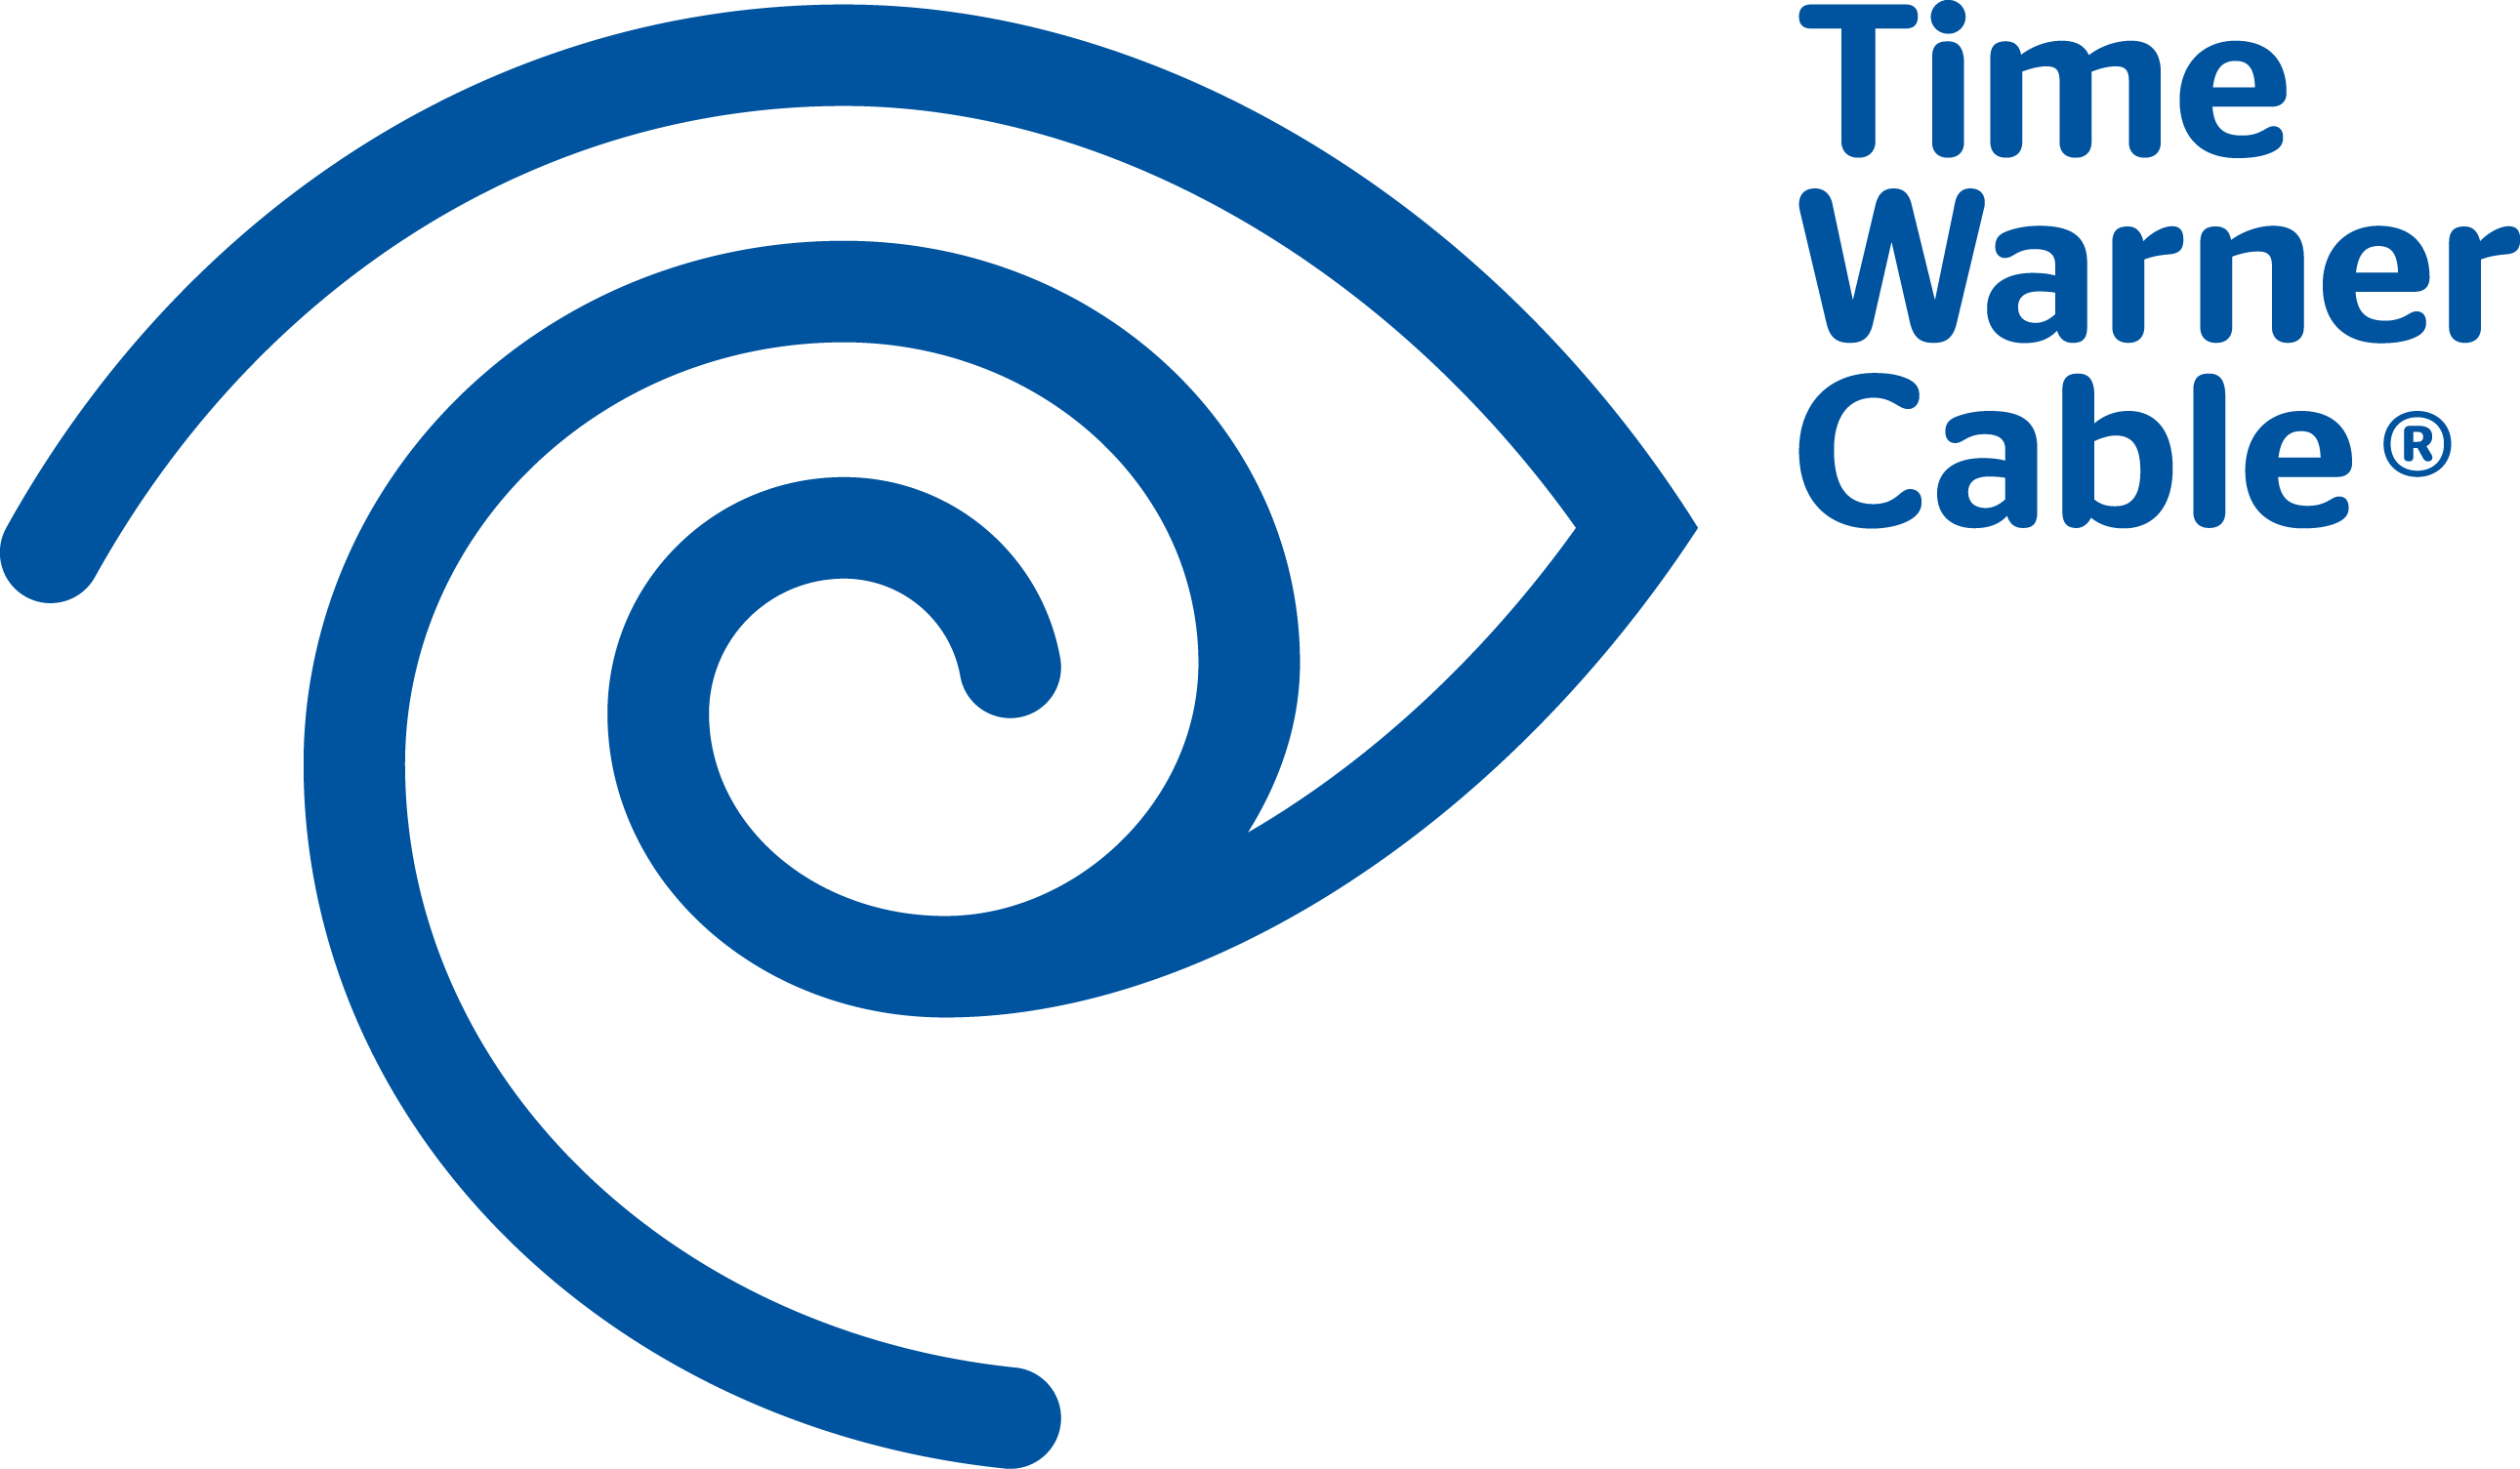 Time Warner Logo - Time warner cable Logos